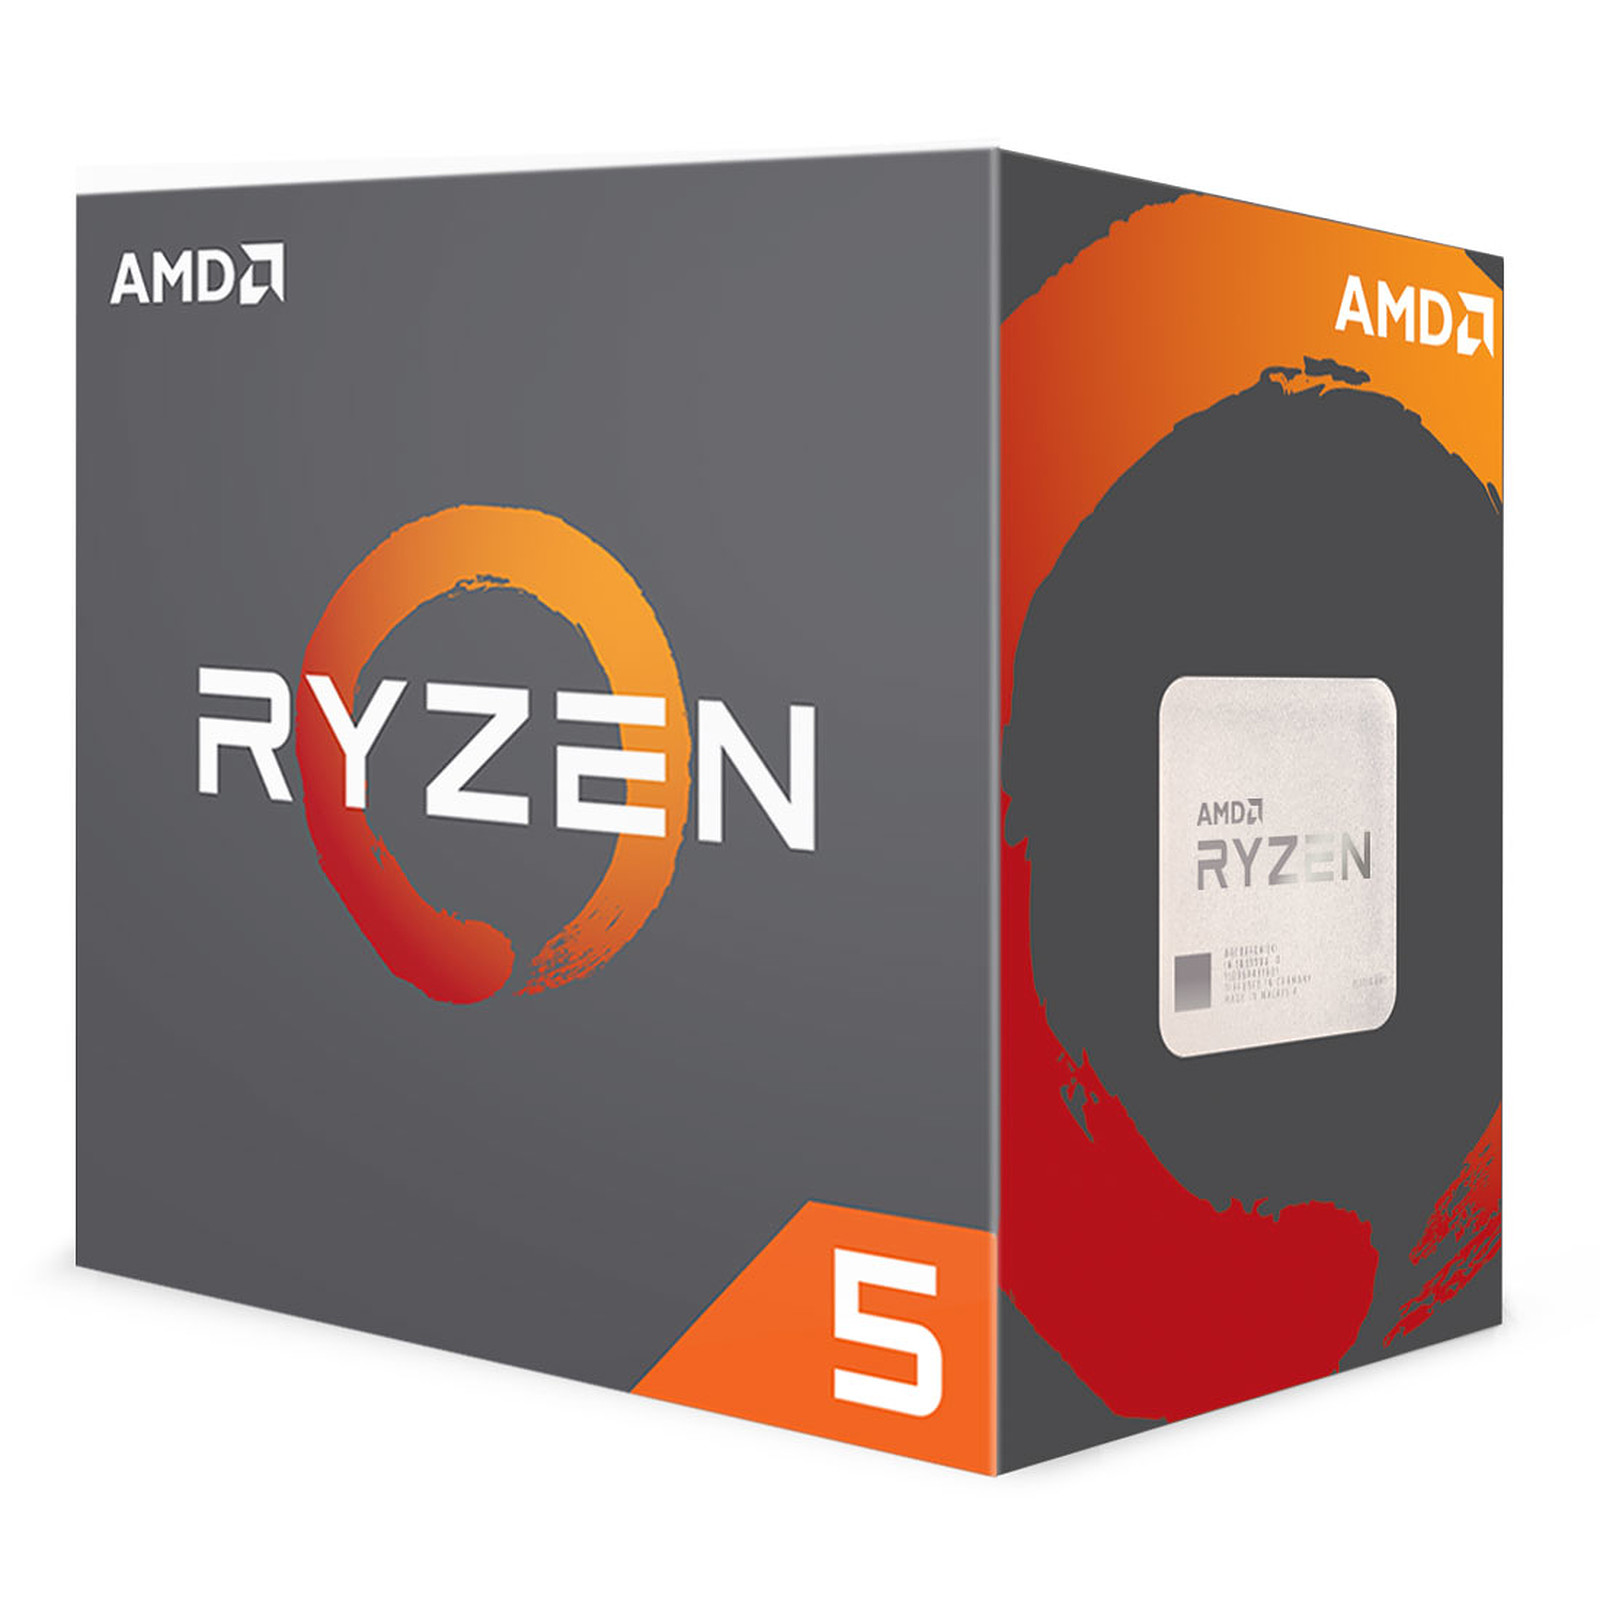 Processeur AMD 6 Core/12 Threads Socket AM4 Ryzen 5 1600X 19 Mo (Boîte), informatique ile de la Réunion, informatique-reunion.com